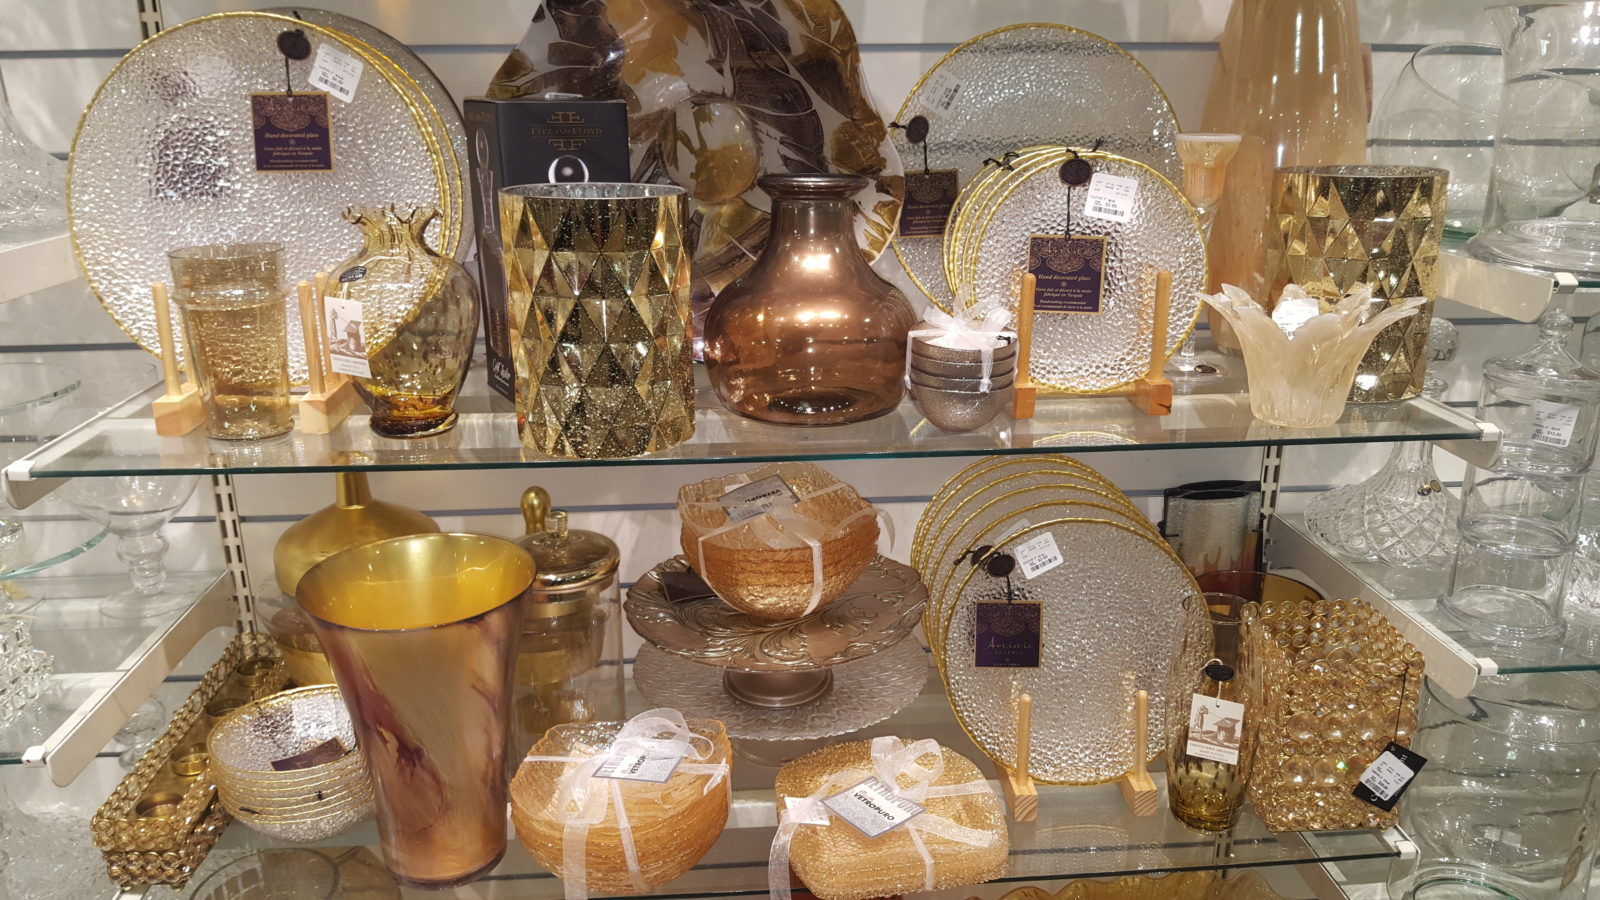 Home Goods:  More Stuff I Don't Need But Who Cares?